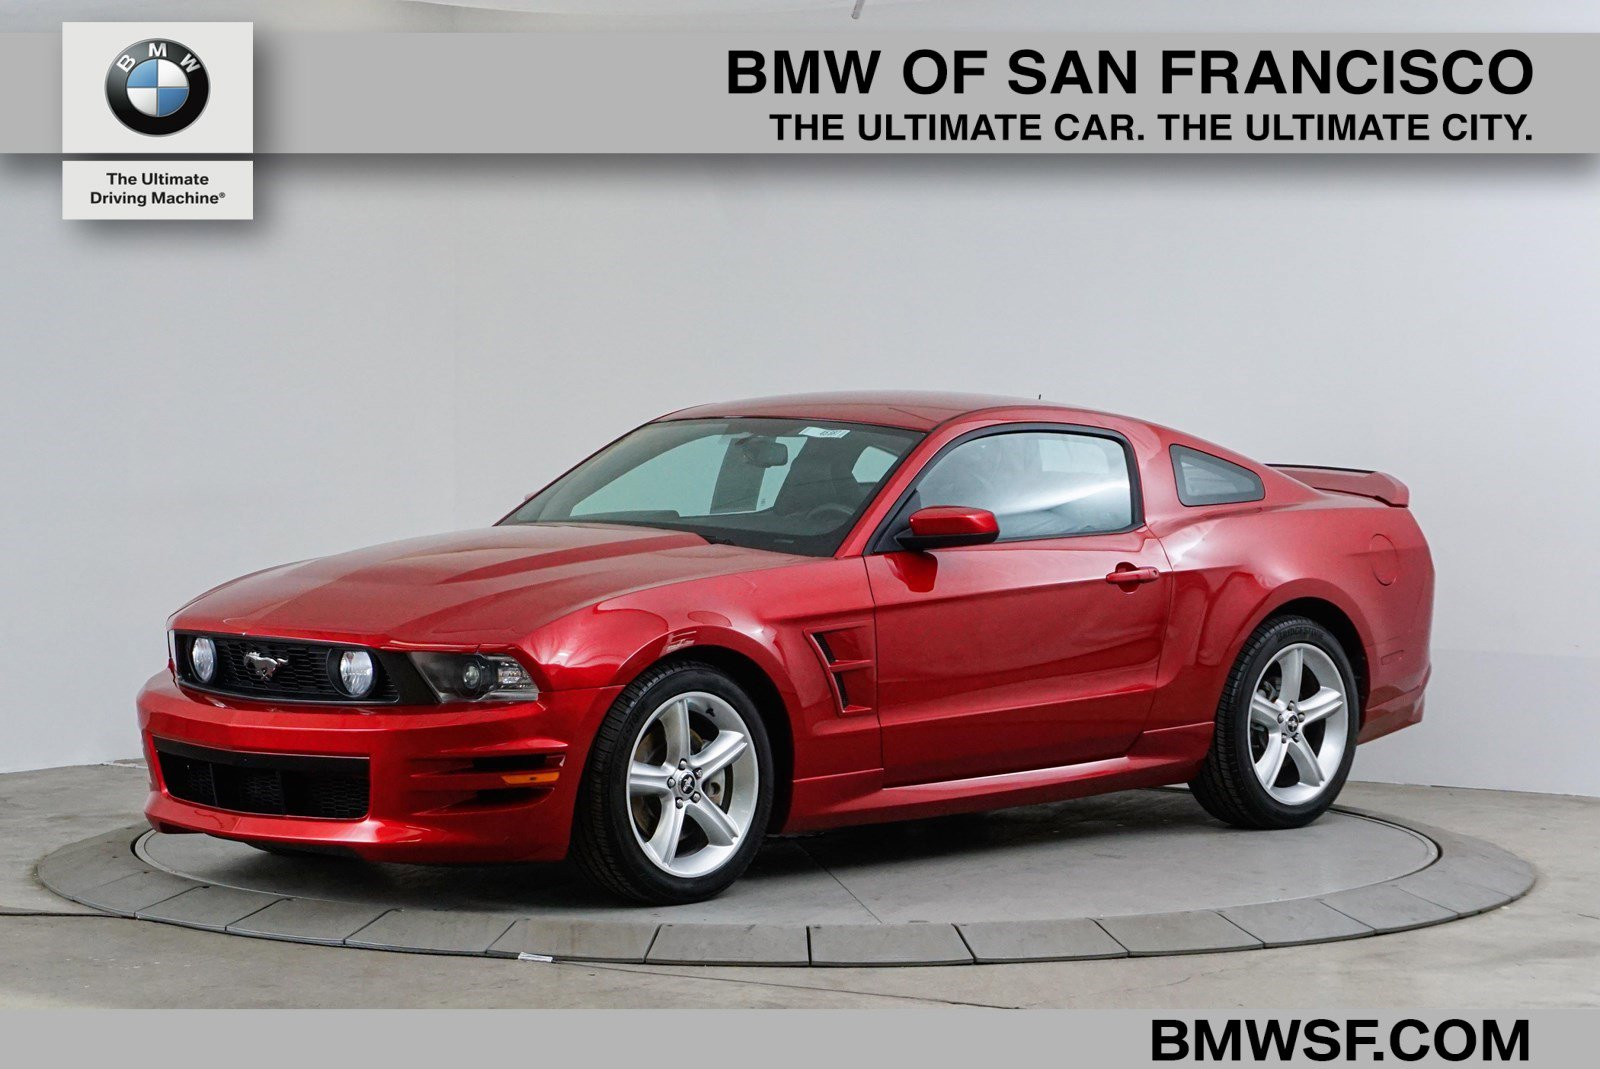 2012 Ford Mustang GT Premium image